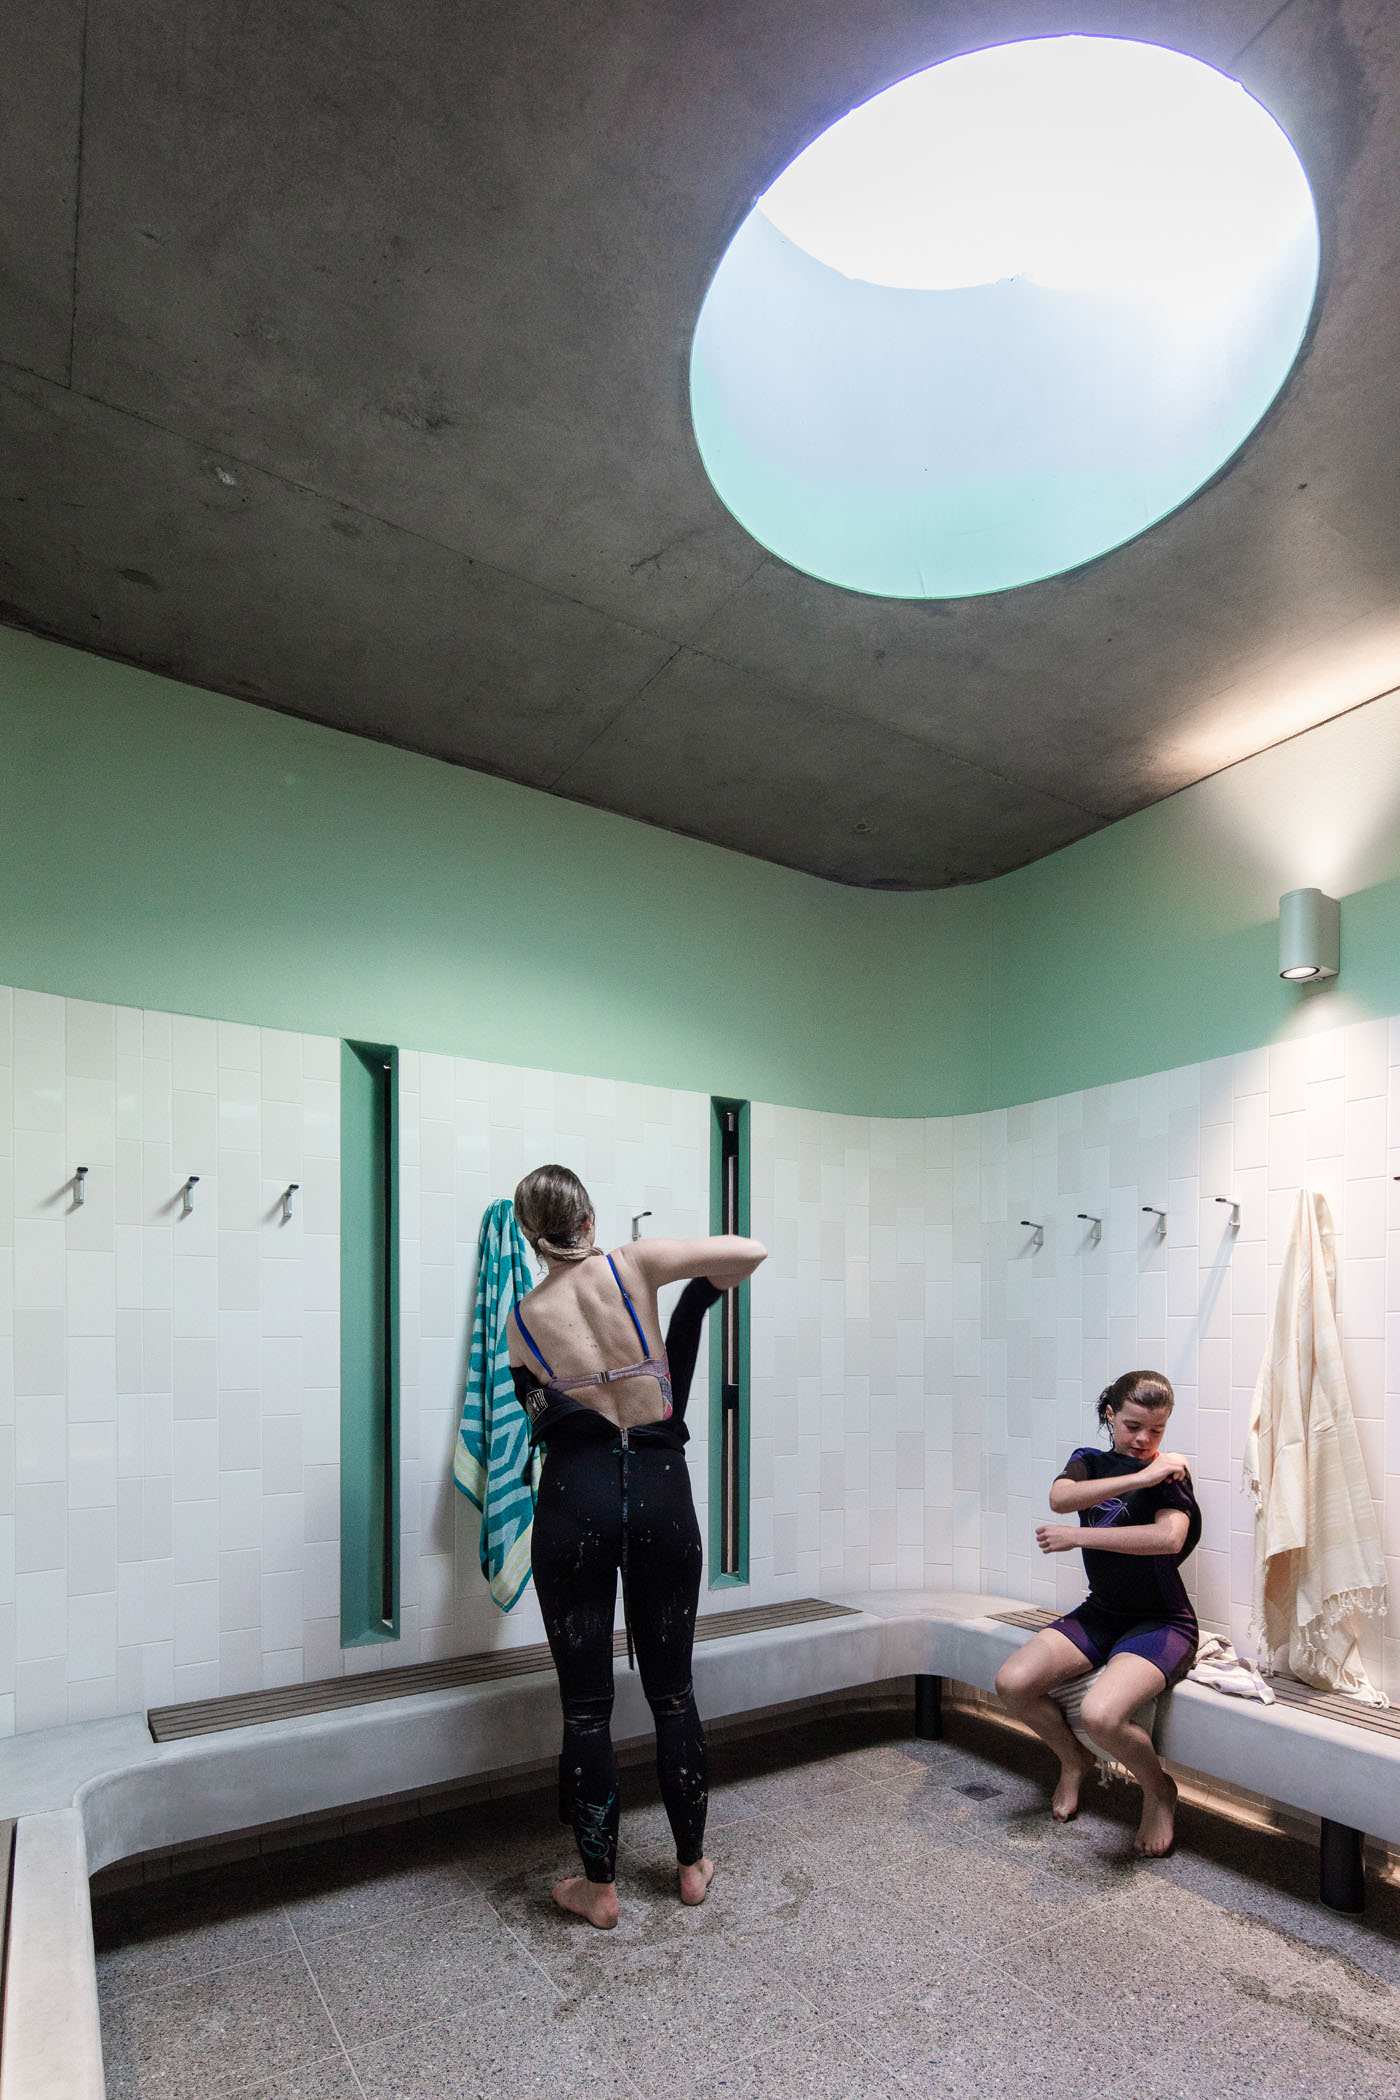 North Bondi Amenities, a public project by award winning Sam Crawford Architects. Interior of the change rooms with a great quality of light.